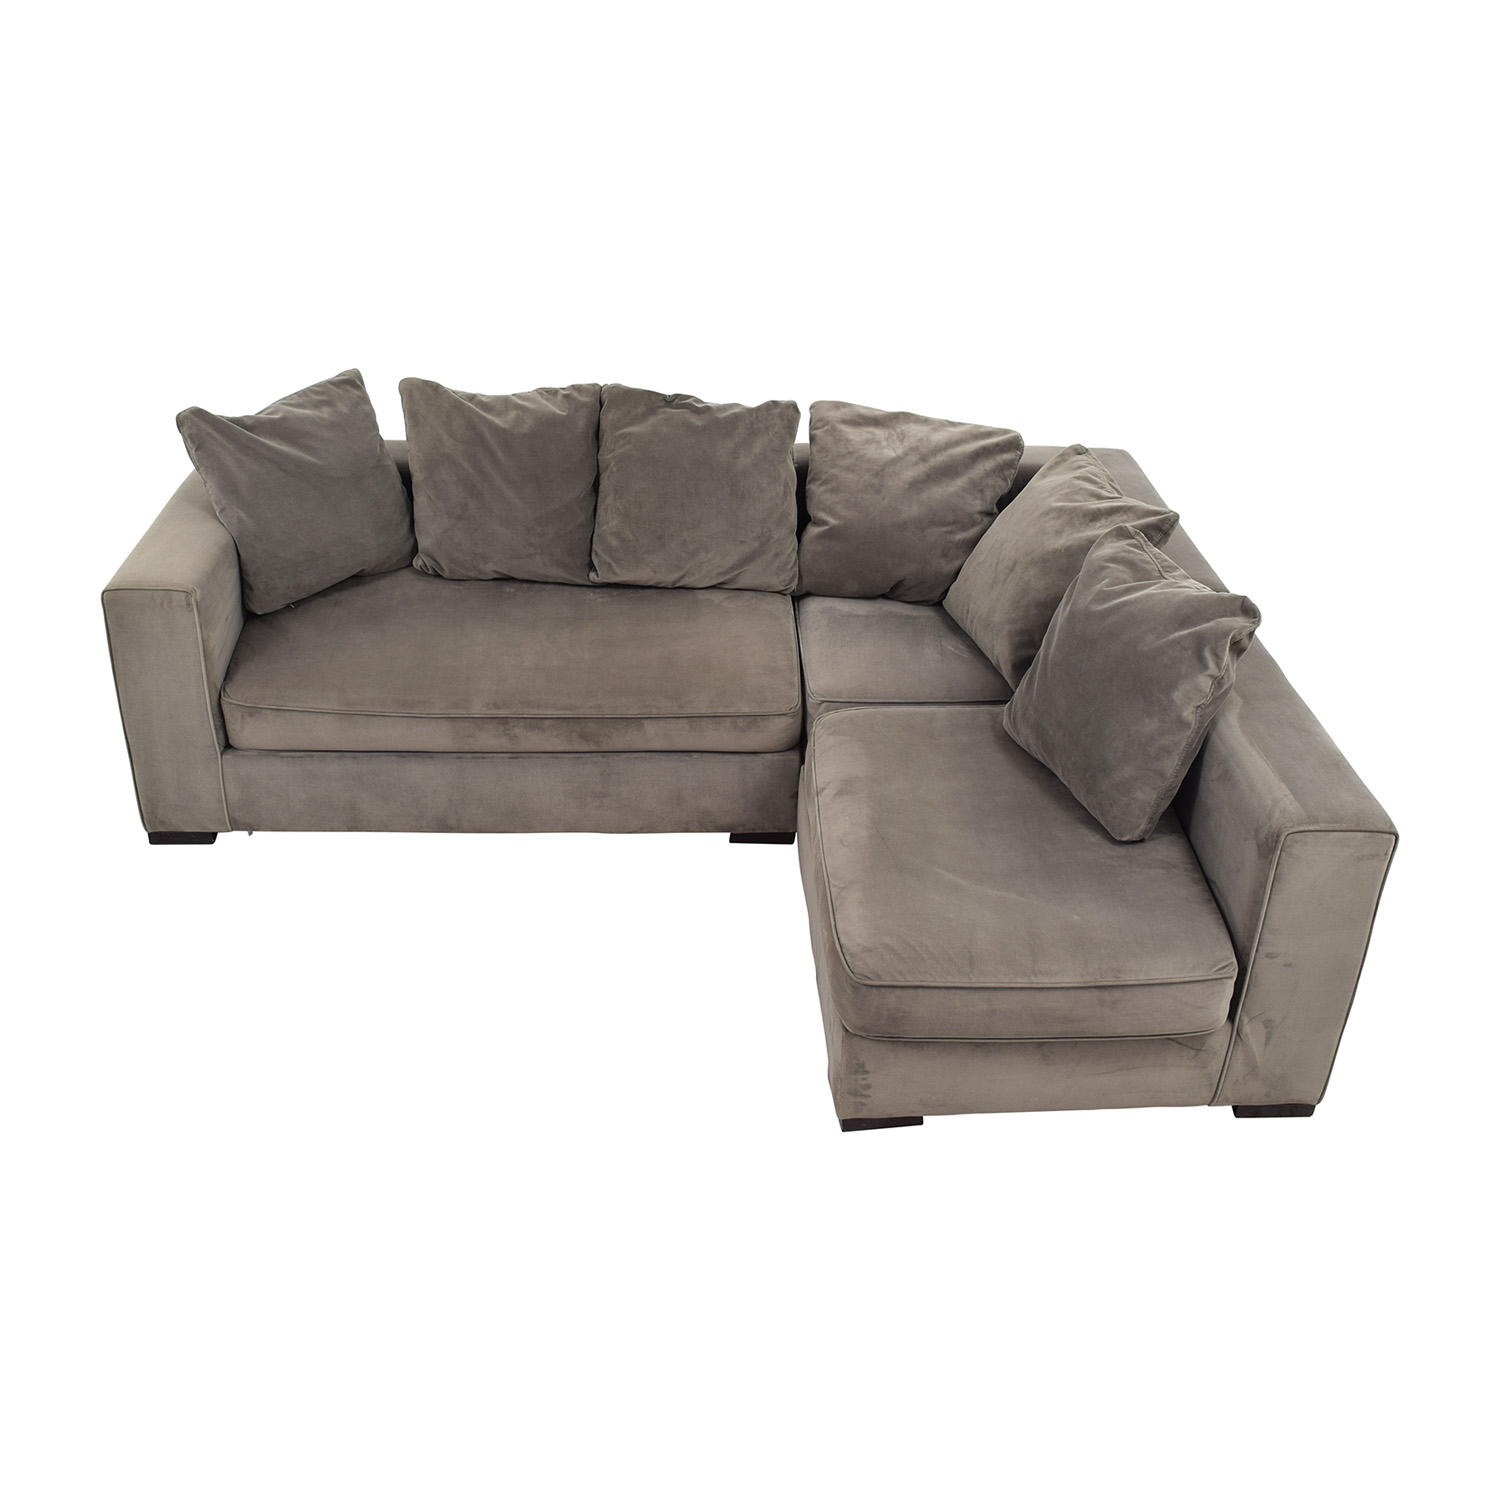 West Elm Modular Gray Sectional / Sofas